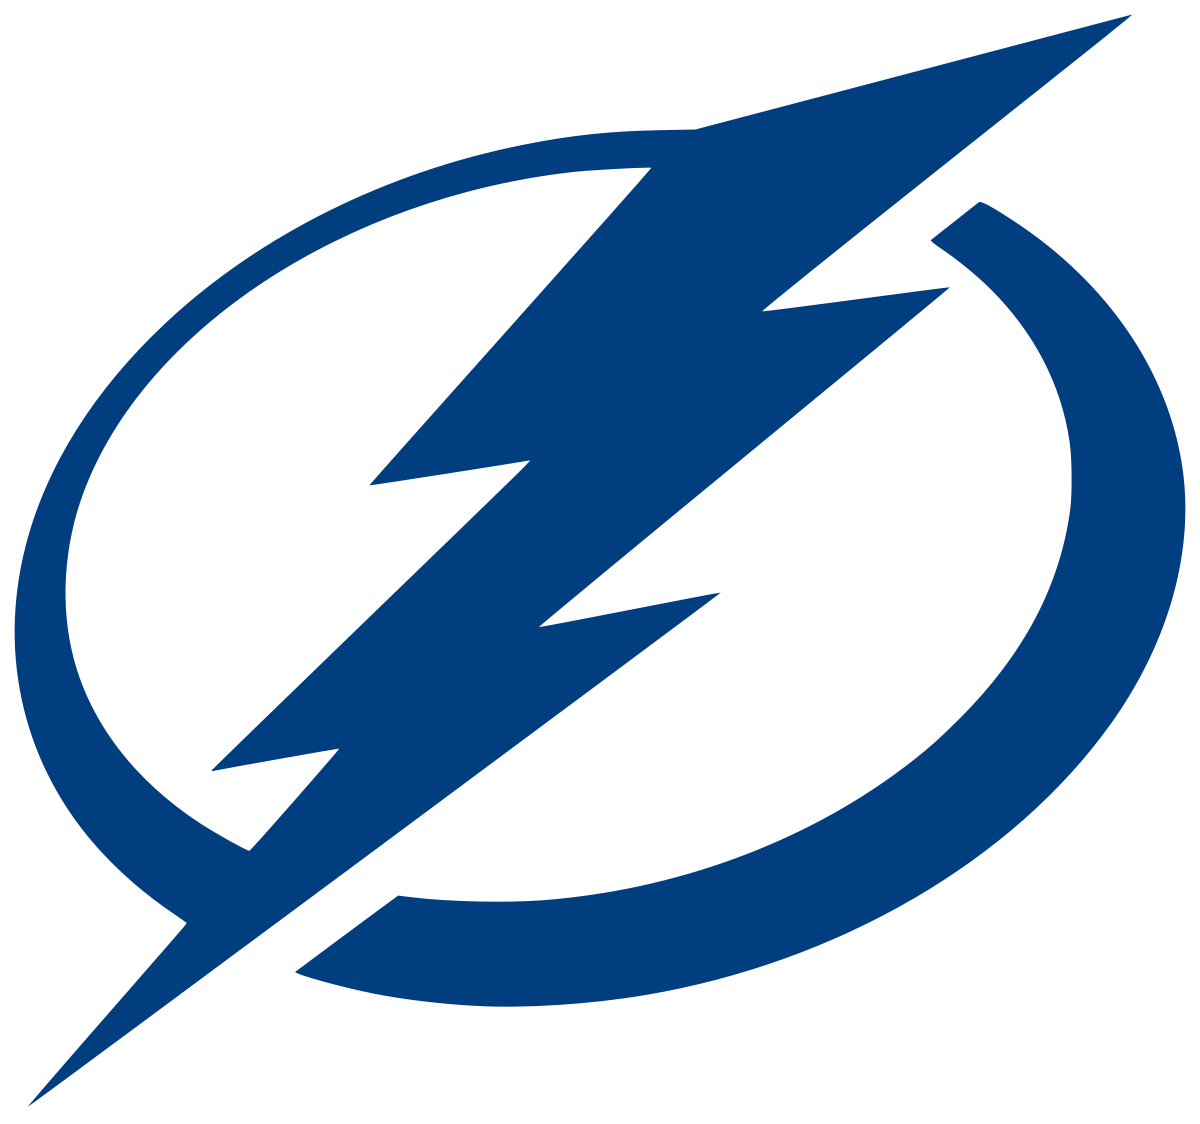 Programme TV Tampa Bay Lightning